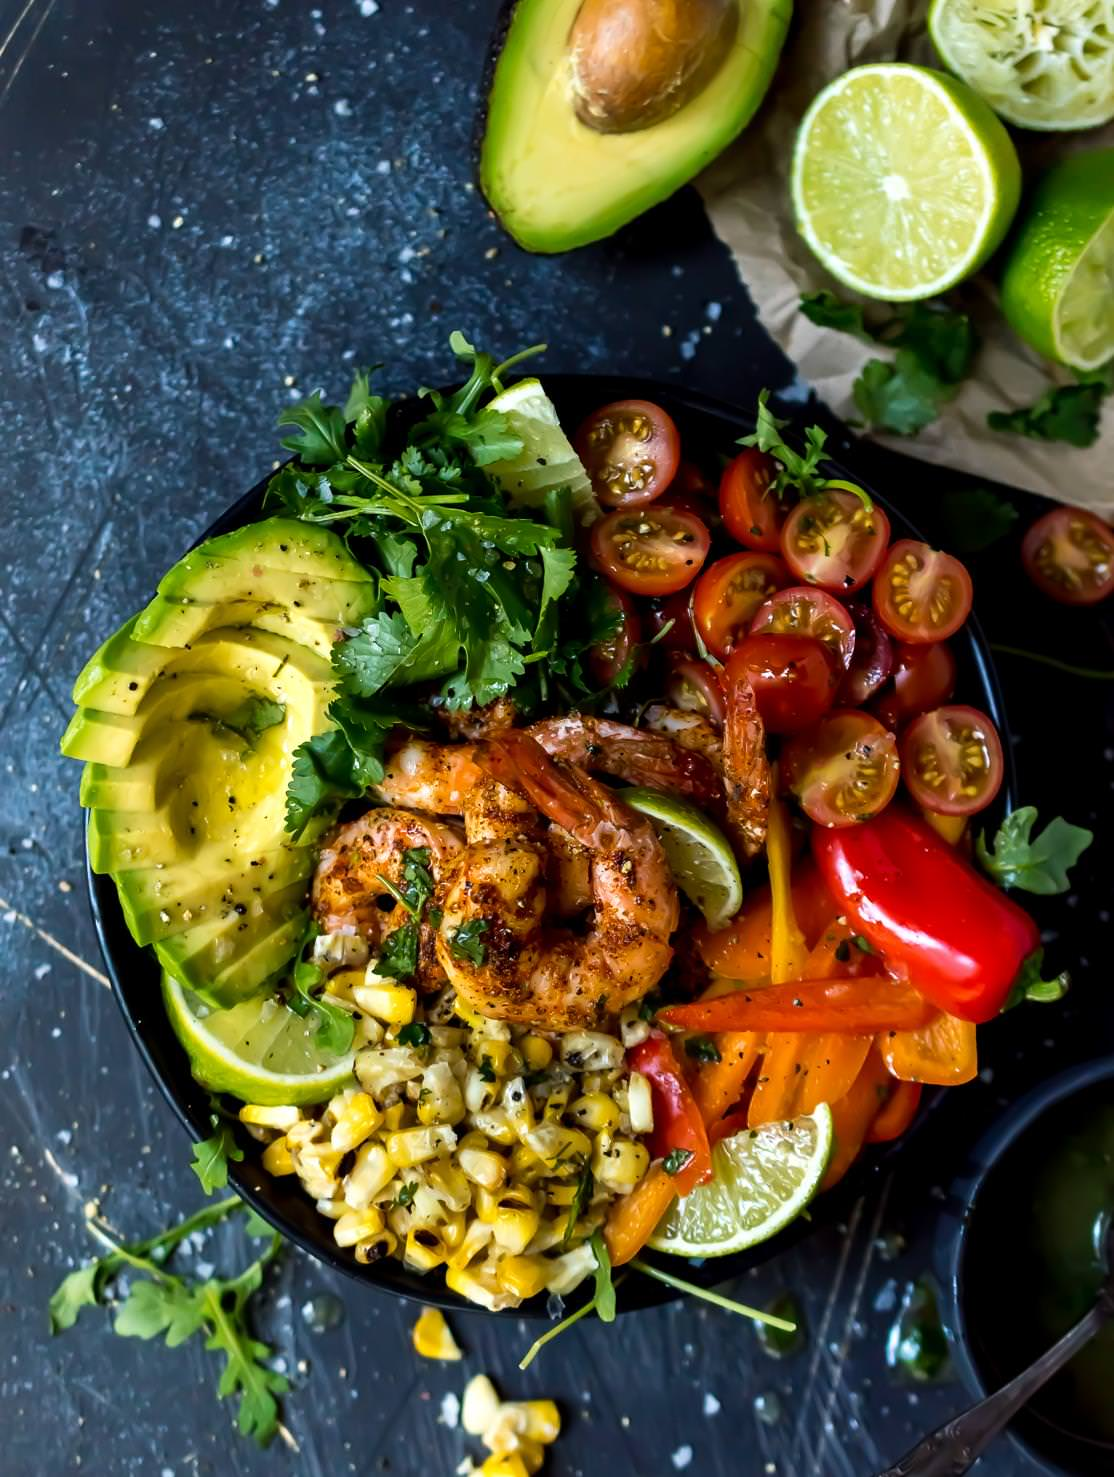 overhead shot of spicy shrimp bowl filled with fresh colorful ingredients, bluish-black background with avocados and limes on the side